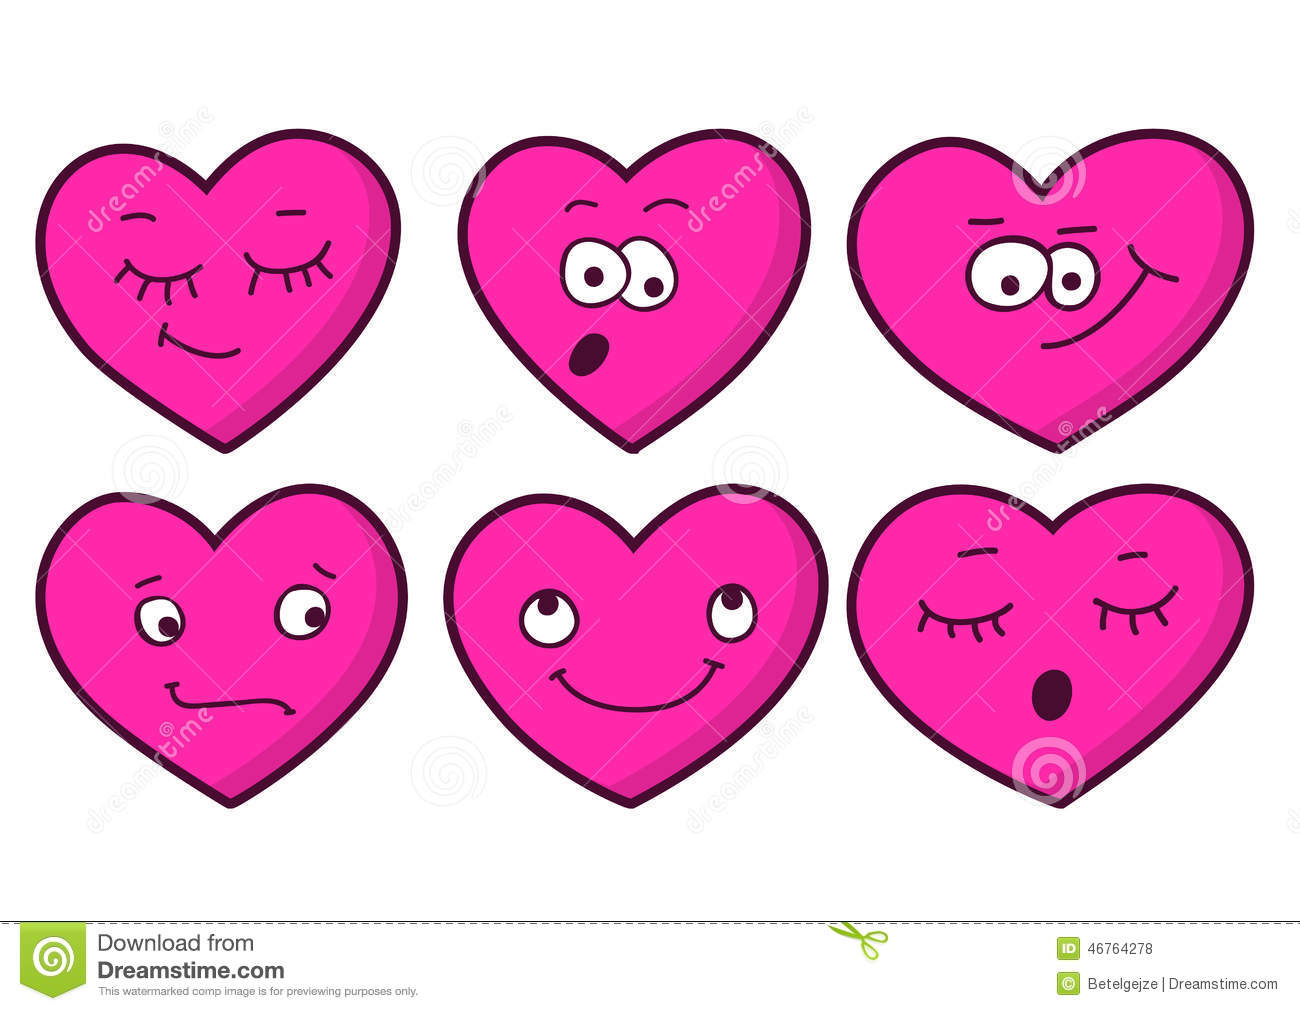 Happy head, happy heart: positive emotions may promote heart ...